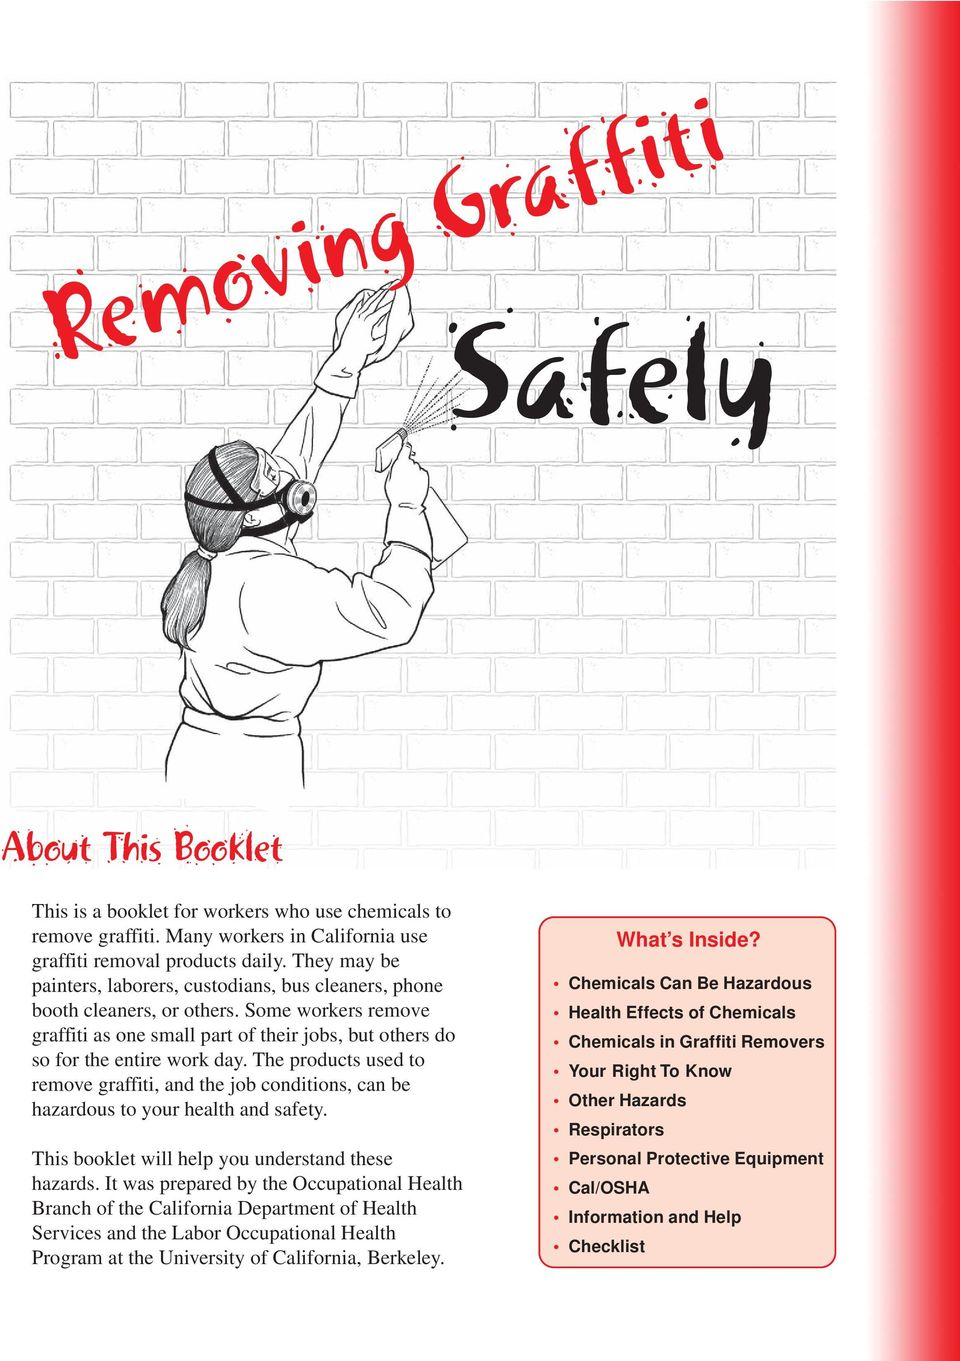 The products used to remove graffiti, and the job conditions, can be hazardous to your health and safety. This booklet will help you understand these hazards.